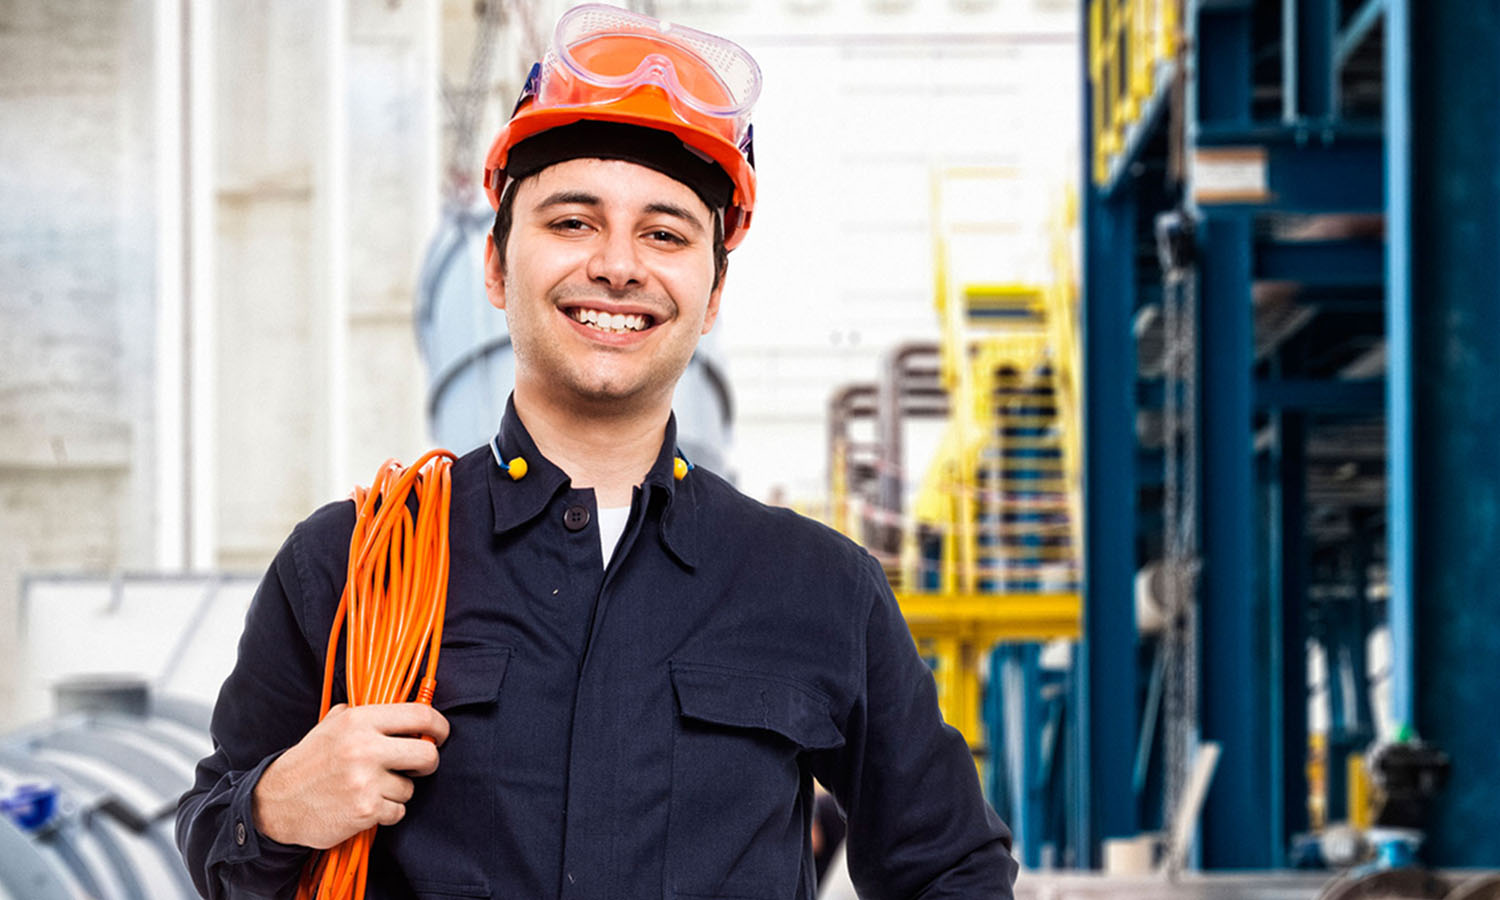 What Traits And Qualities Should You Look For When Hiring An Electrician?